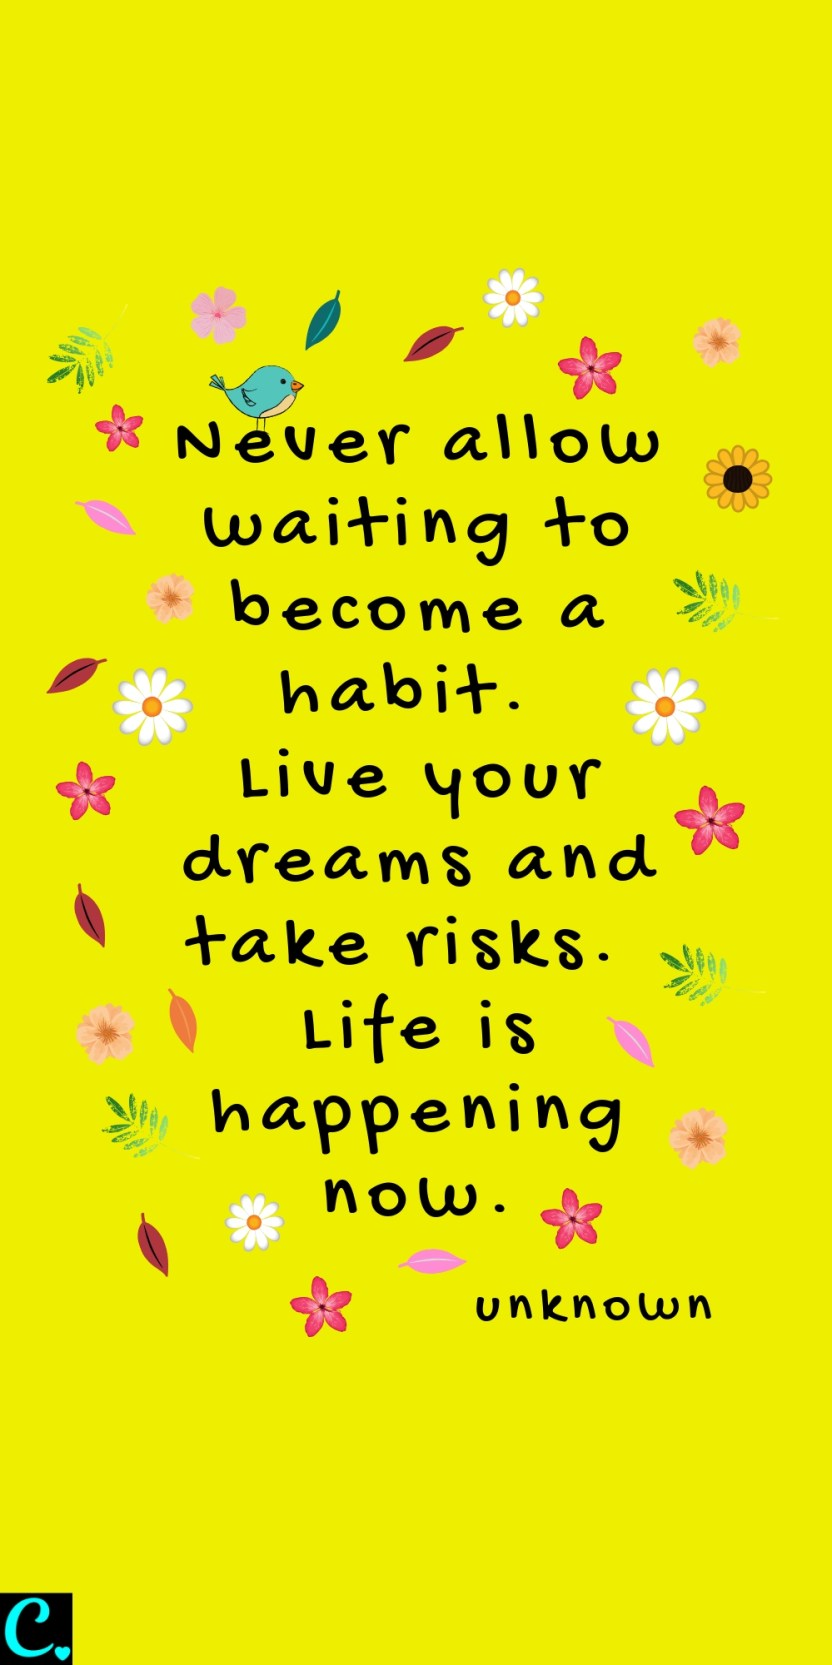 Never allow waiting to become a habit. Live your dreams and take risks. Life is happening now. #successquote #comfortzonequotes #successmindset #achievegoals #successfulwomen